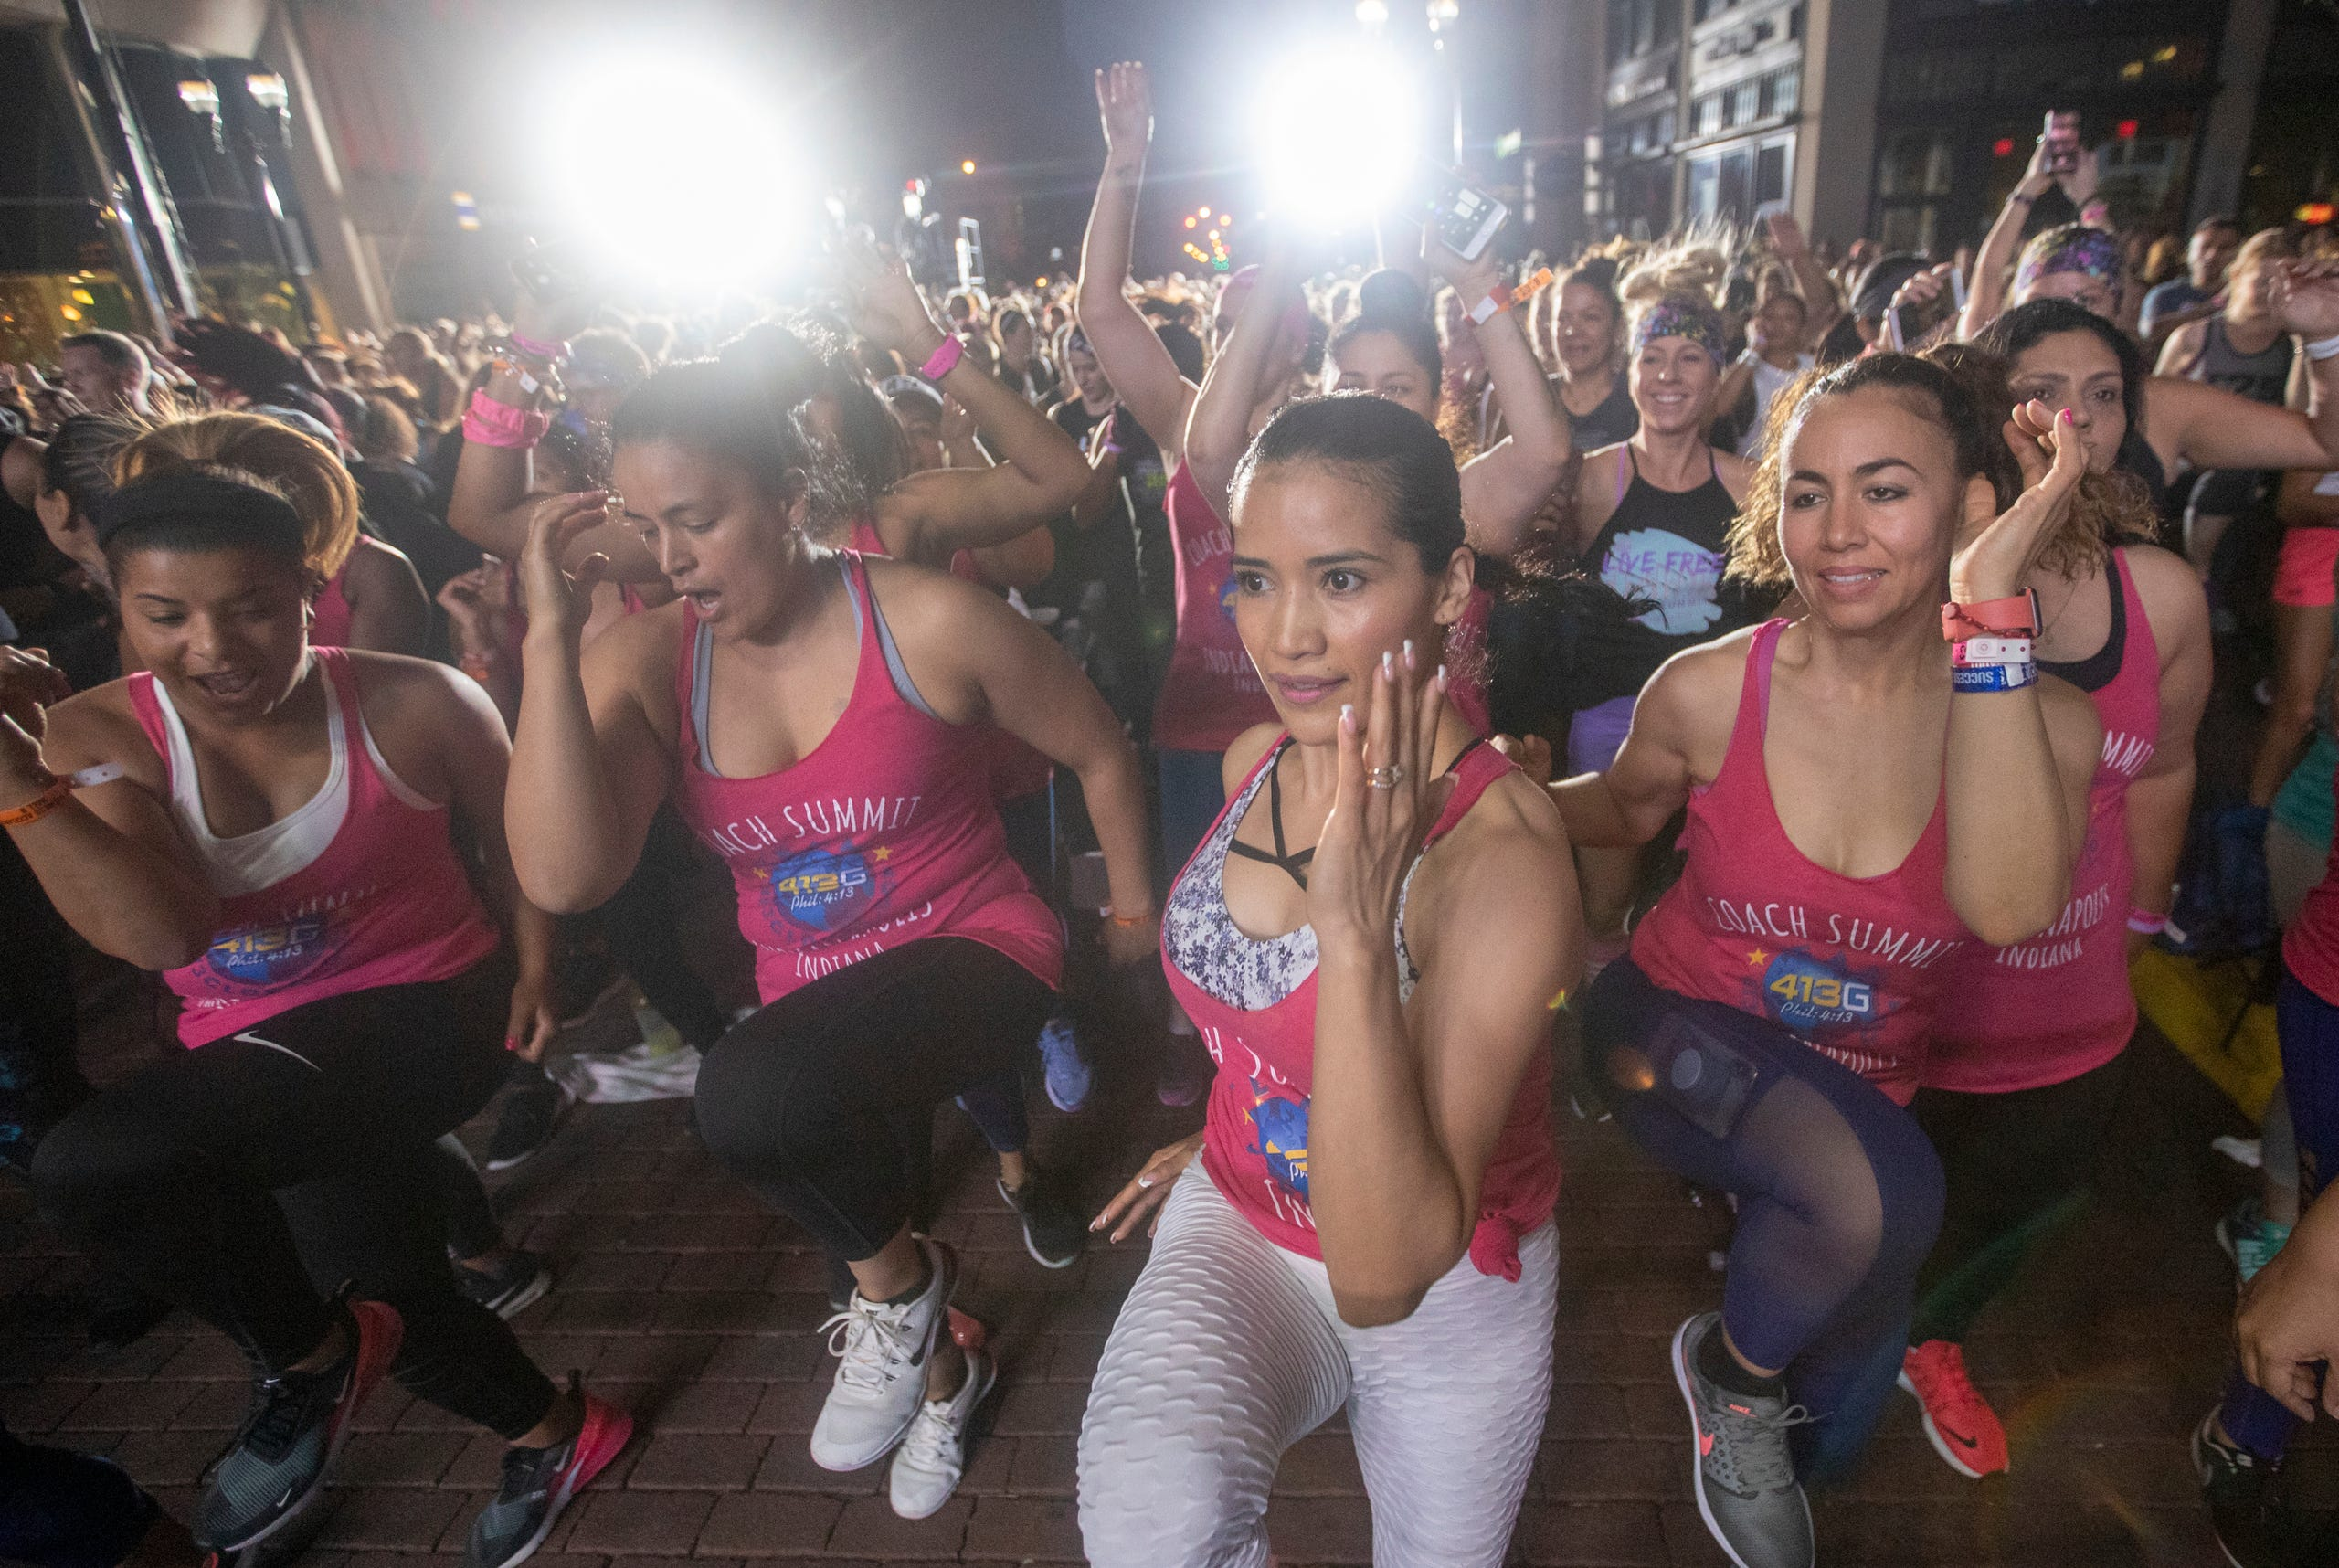 15,000 fitness junkies show Indy how to exercise in Beach Body workout